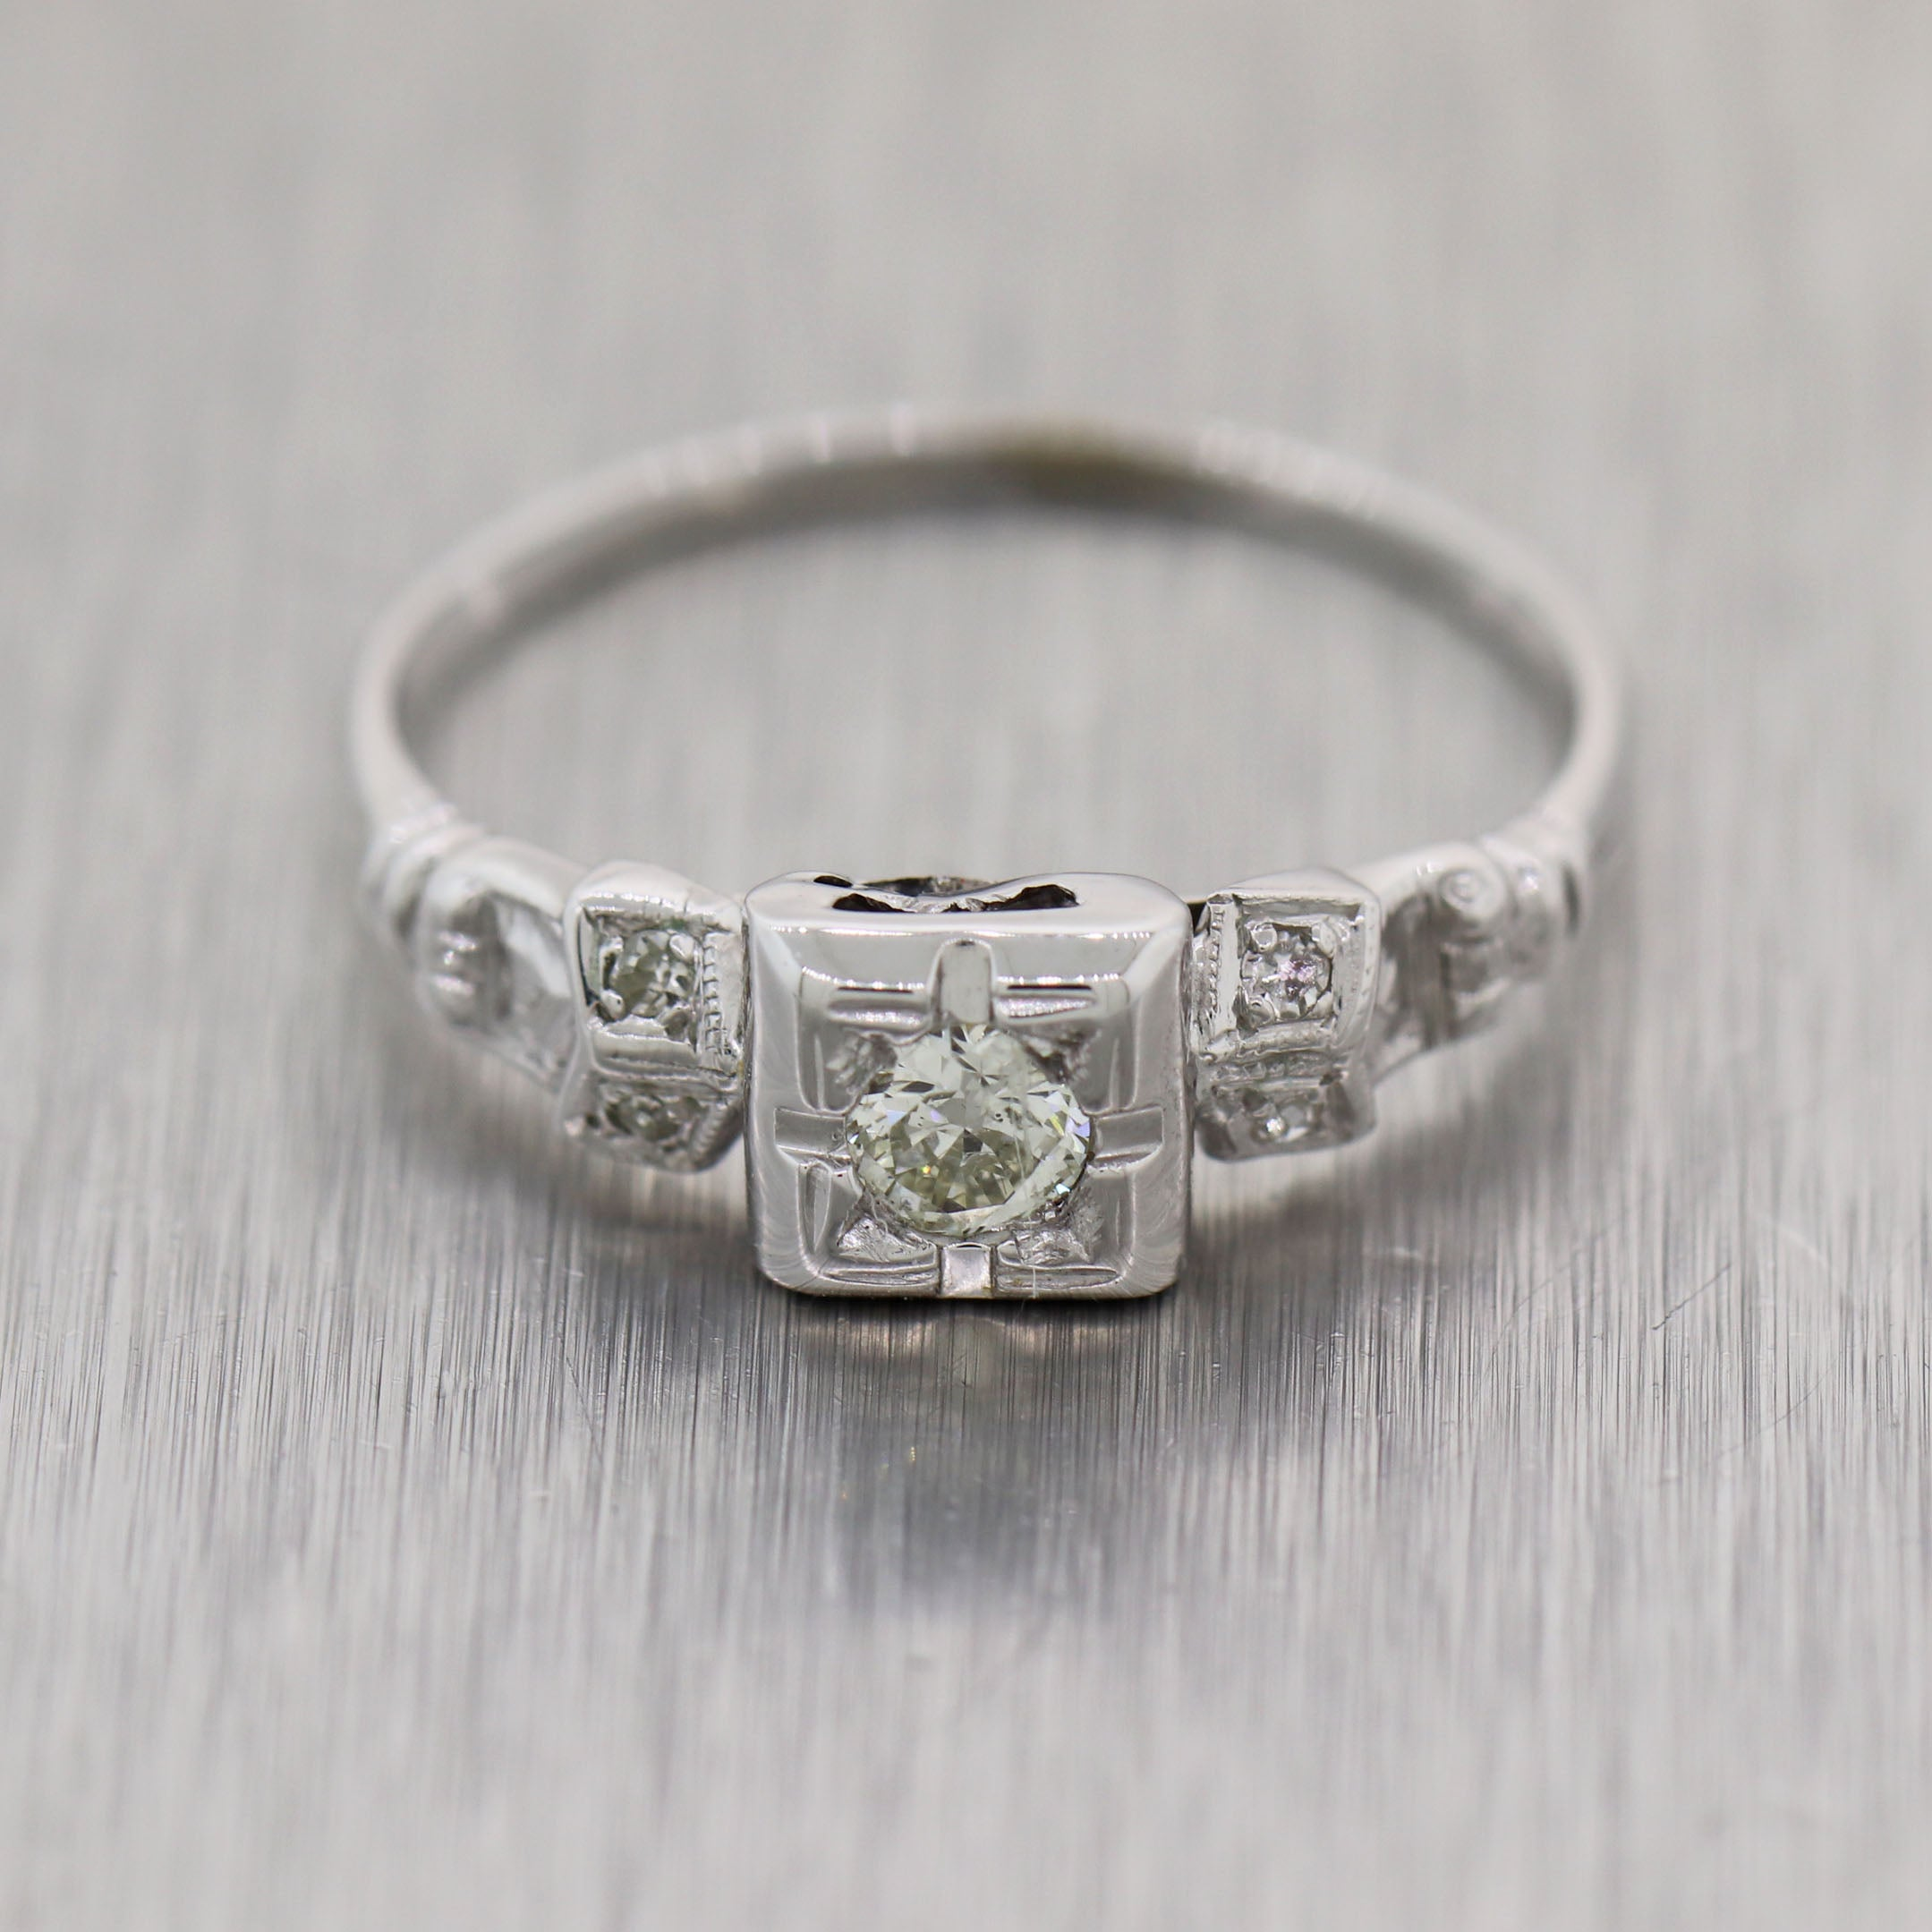 1930's Antique Art Deco 14k White Gold Diamond Engagement Ring